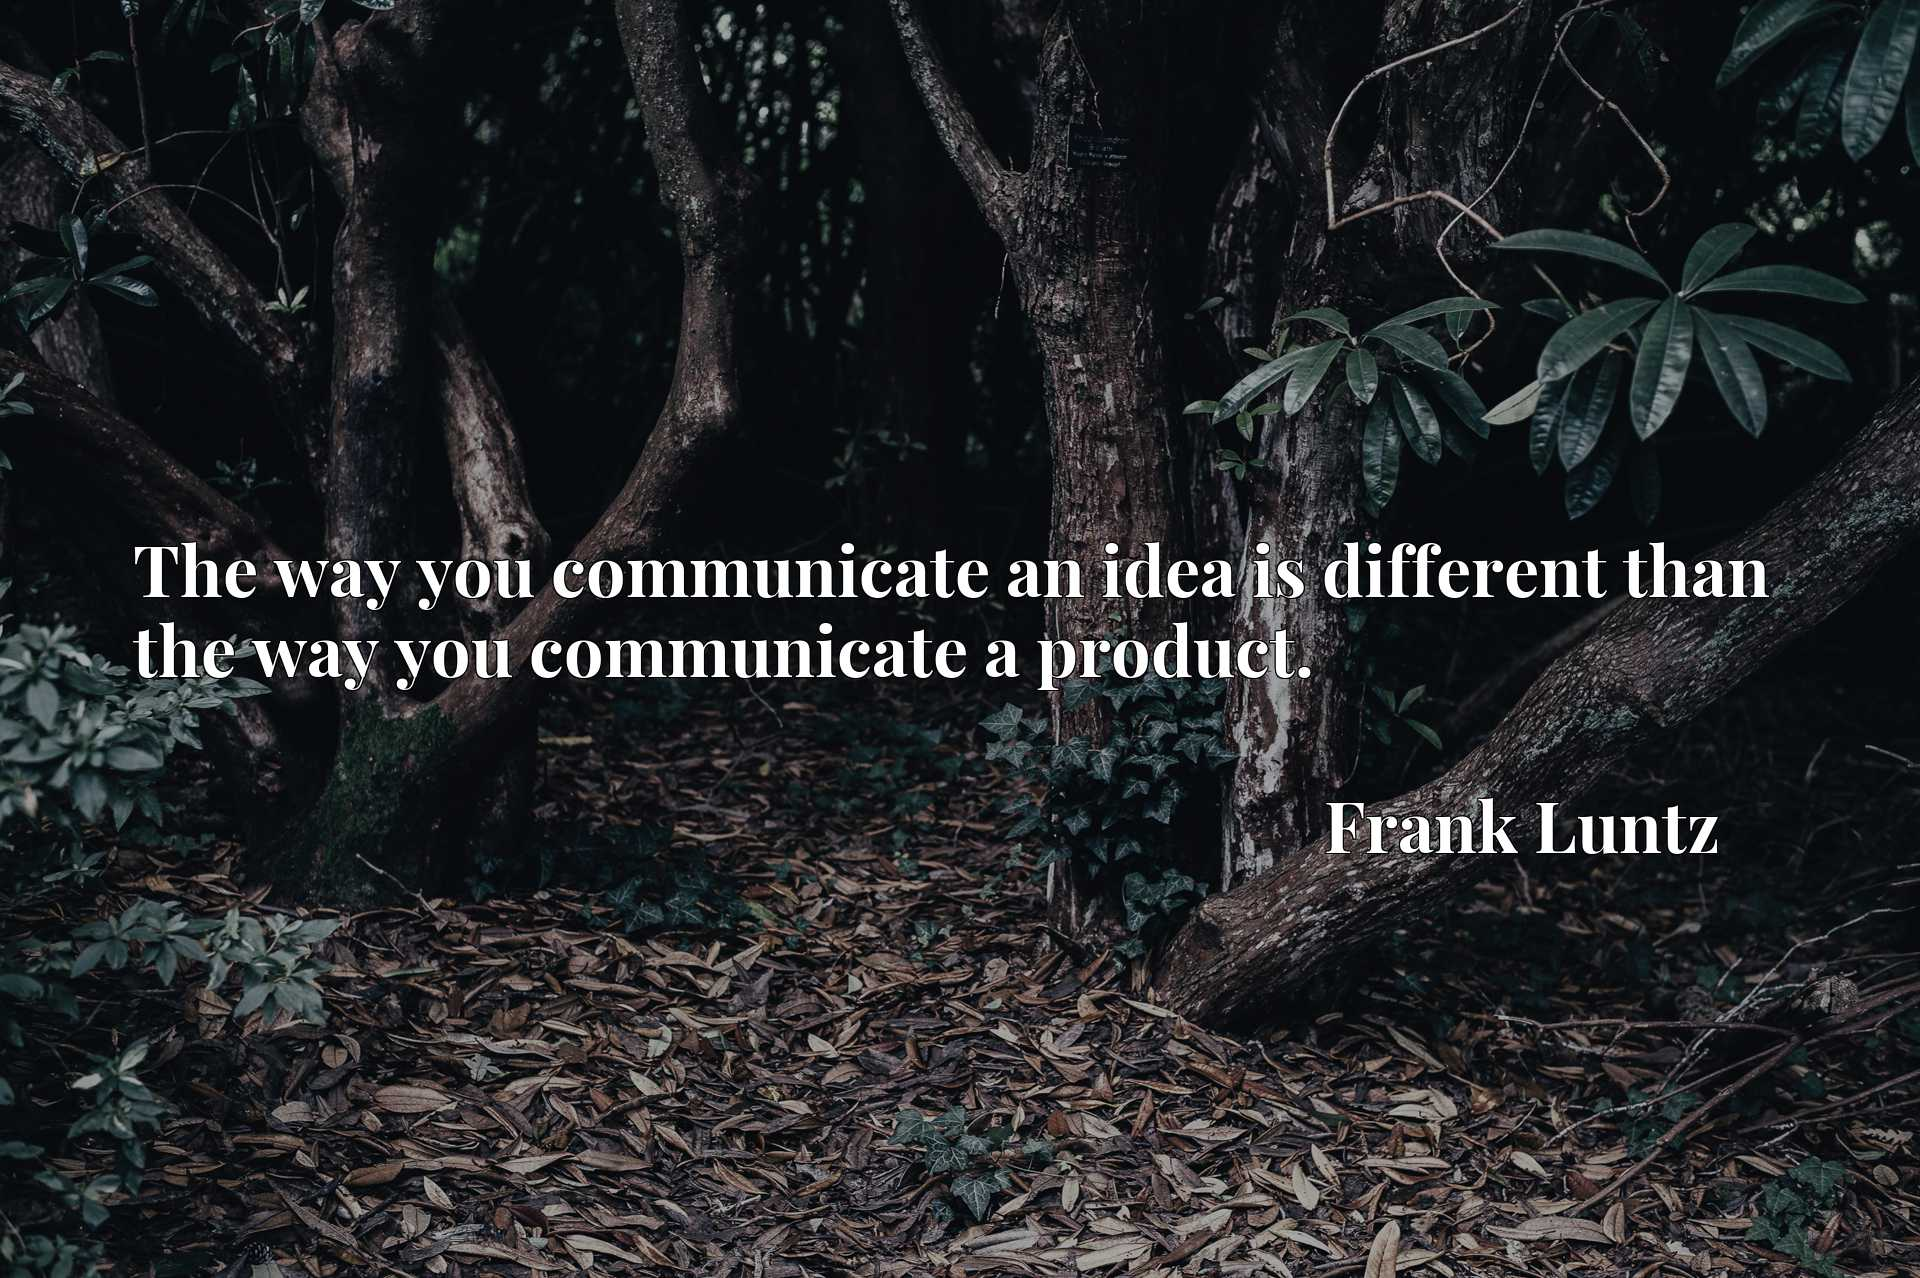 The way you communicate an idea is different than the way you communicate a product.